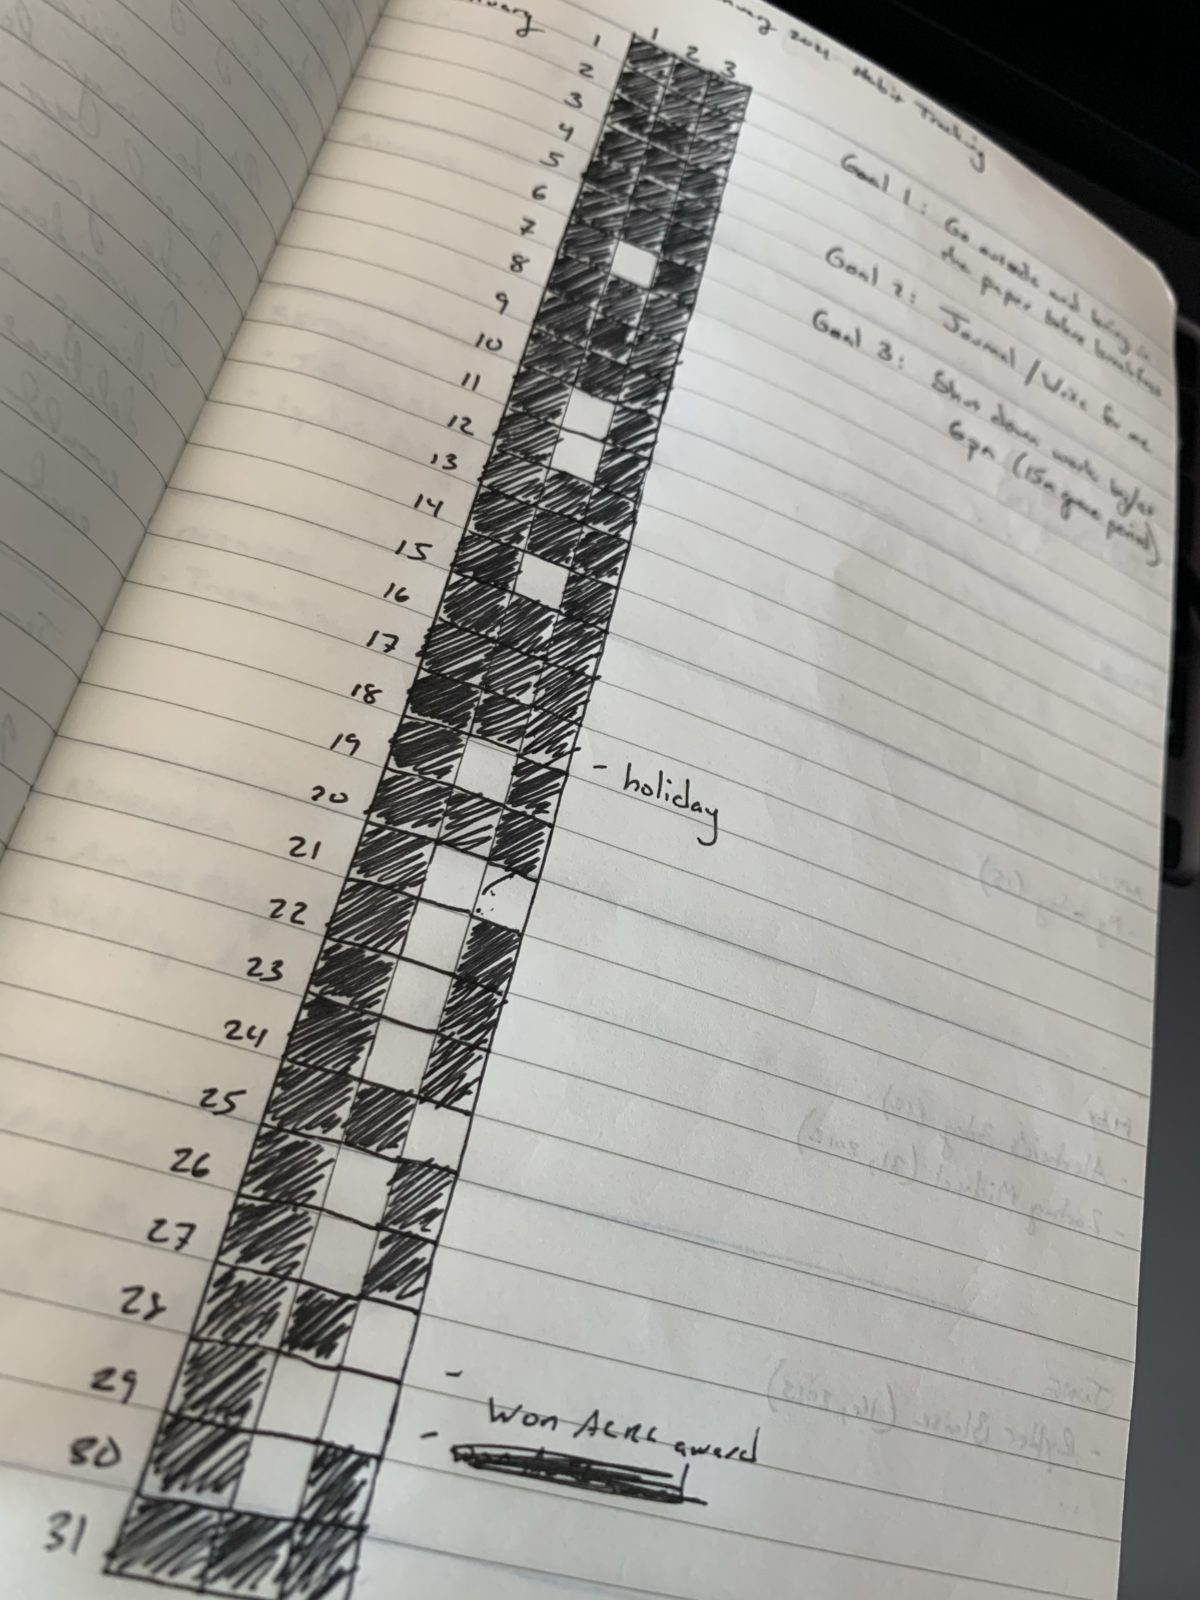 Notebook with habit tracking diagram